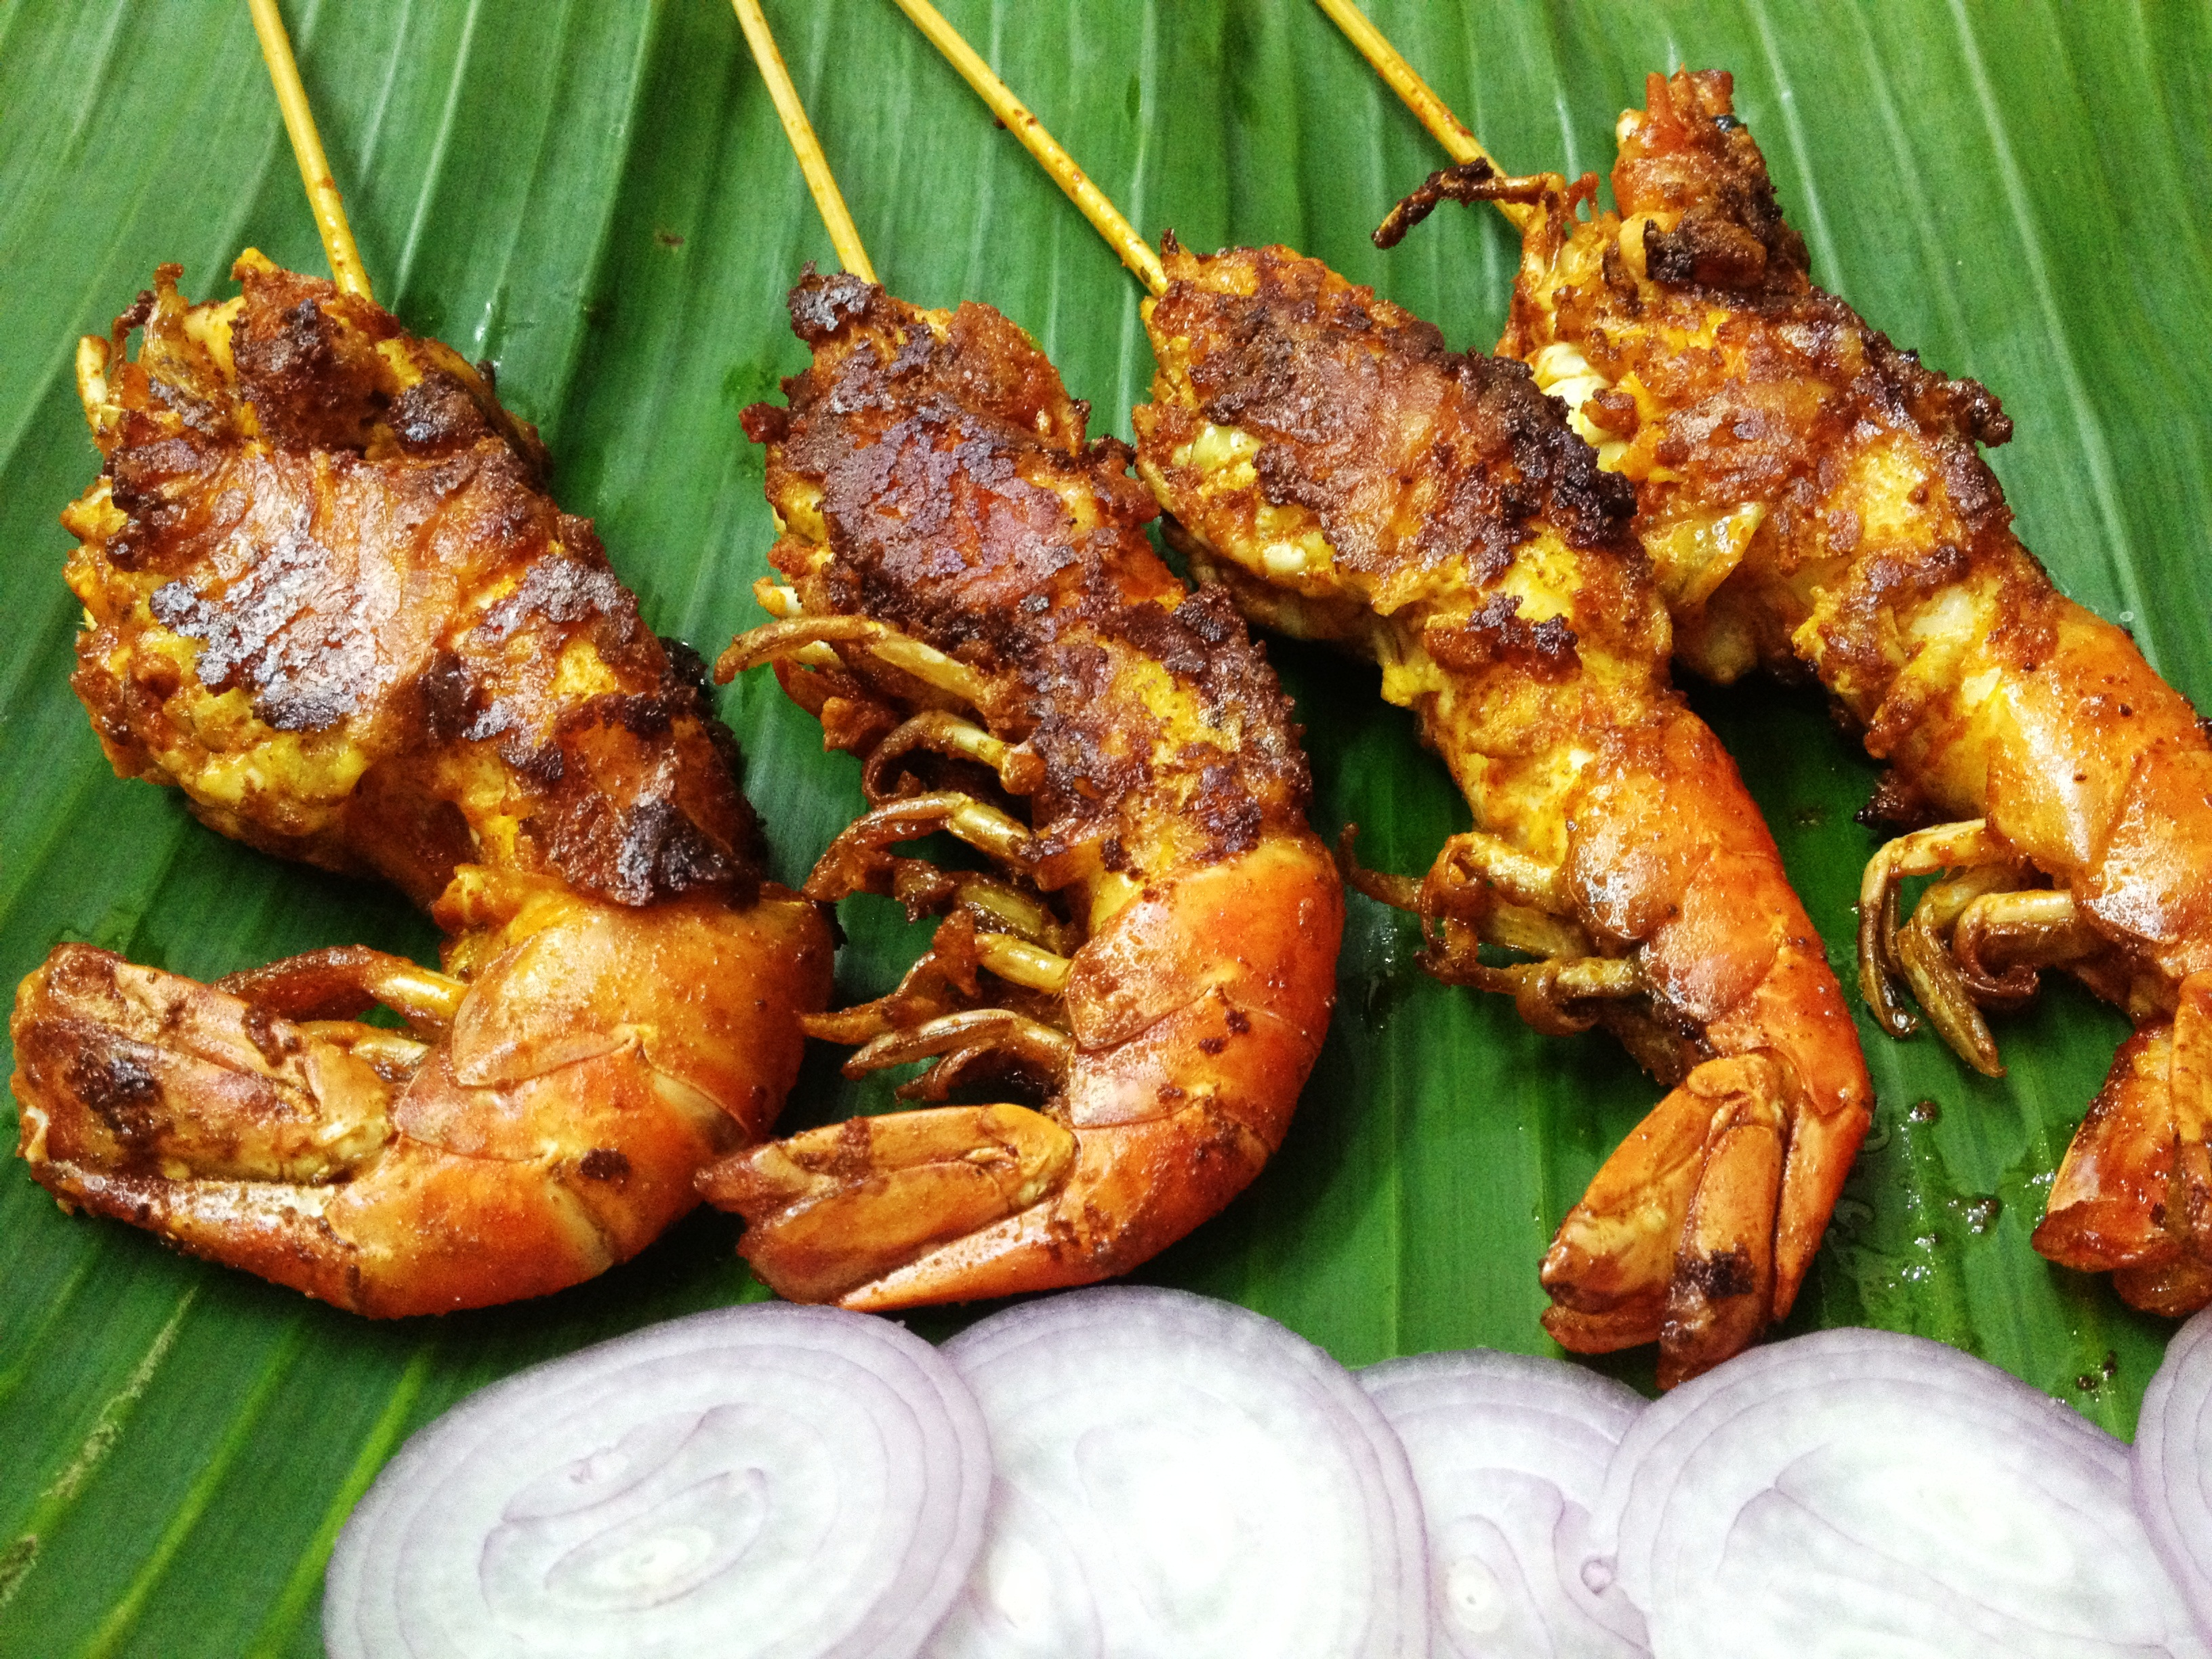 Prawns fry easy cooking n 39 baking for What is the best oil to fry fish in